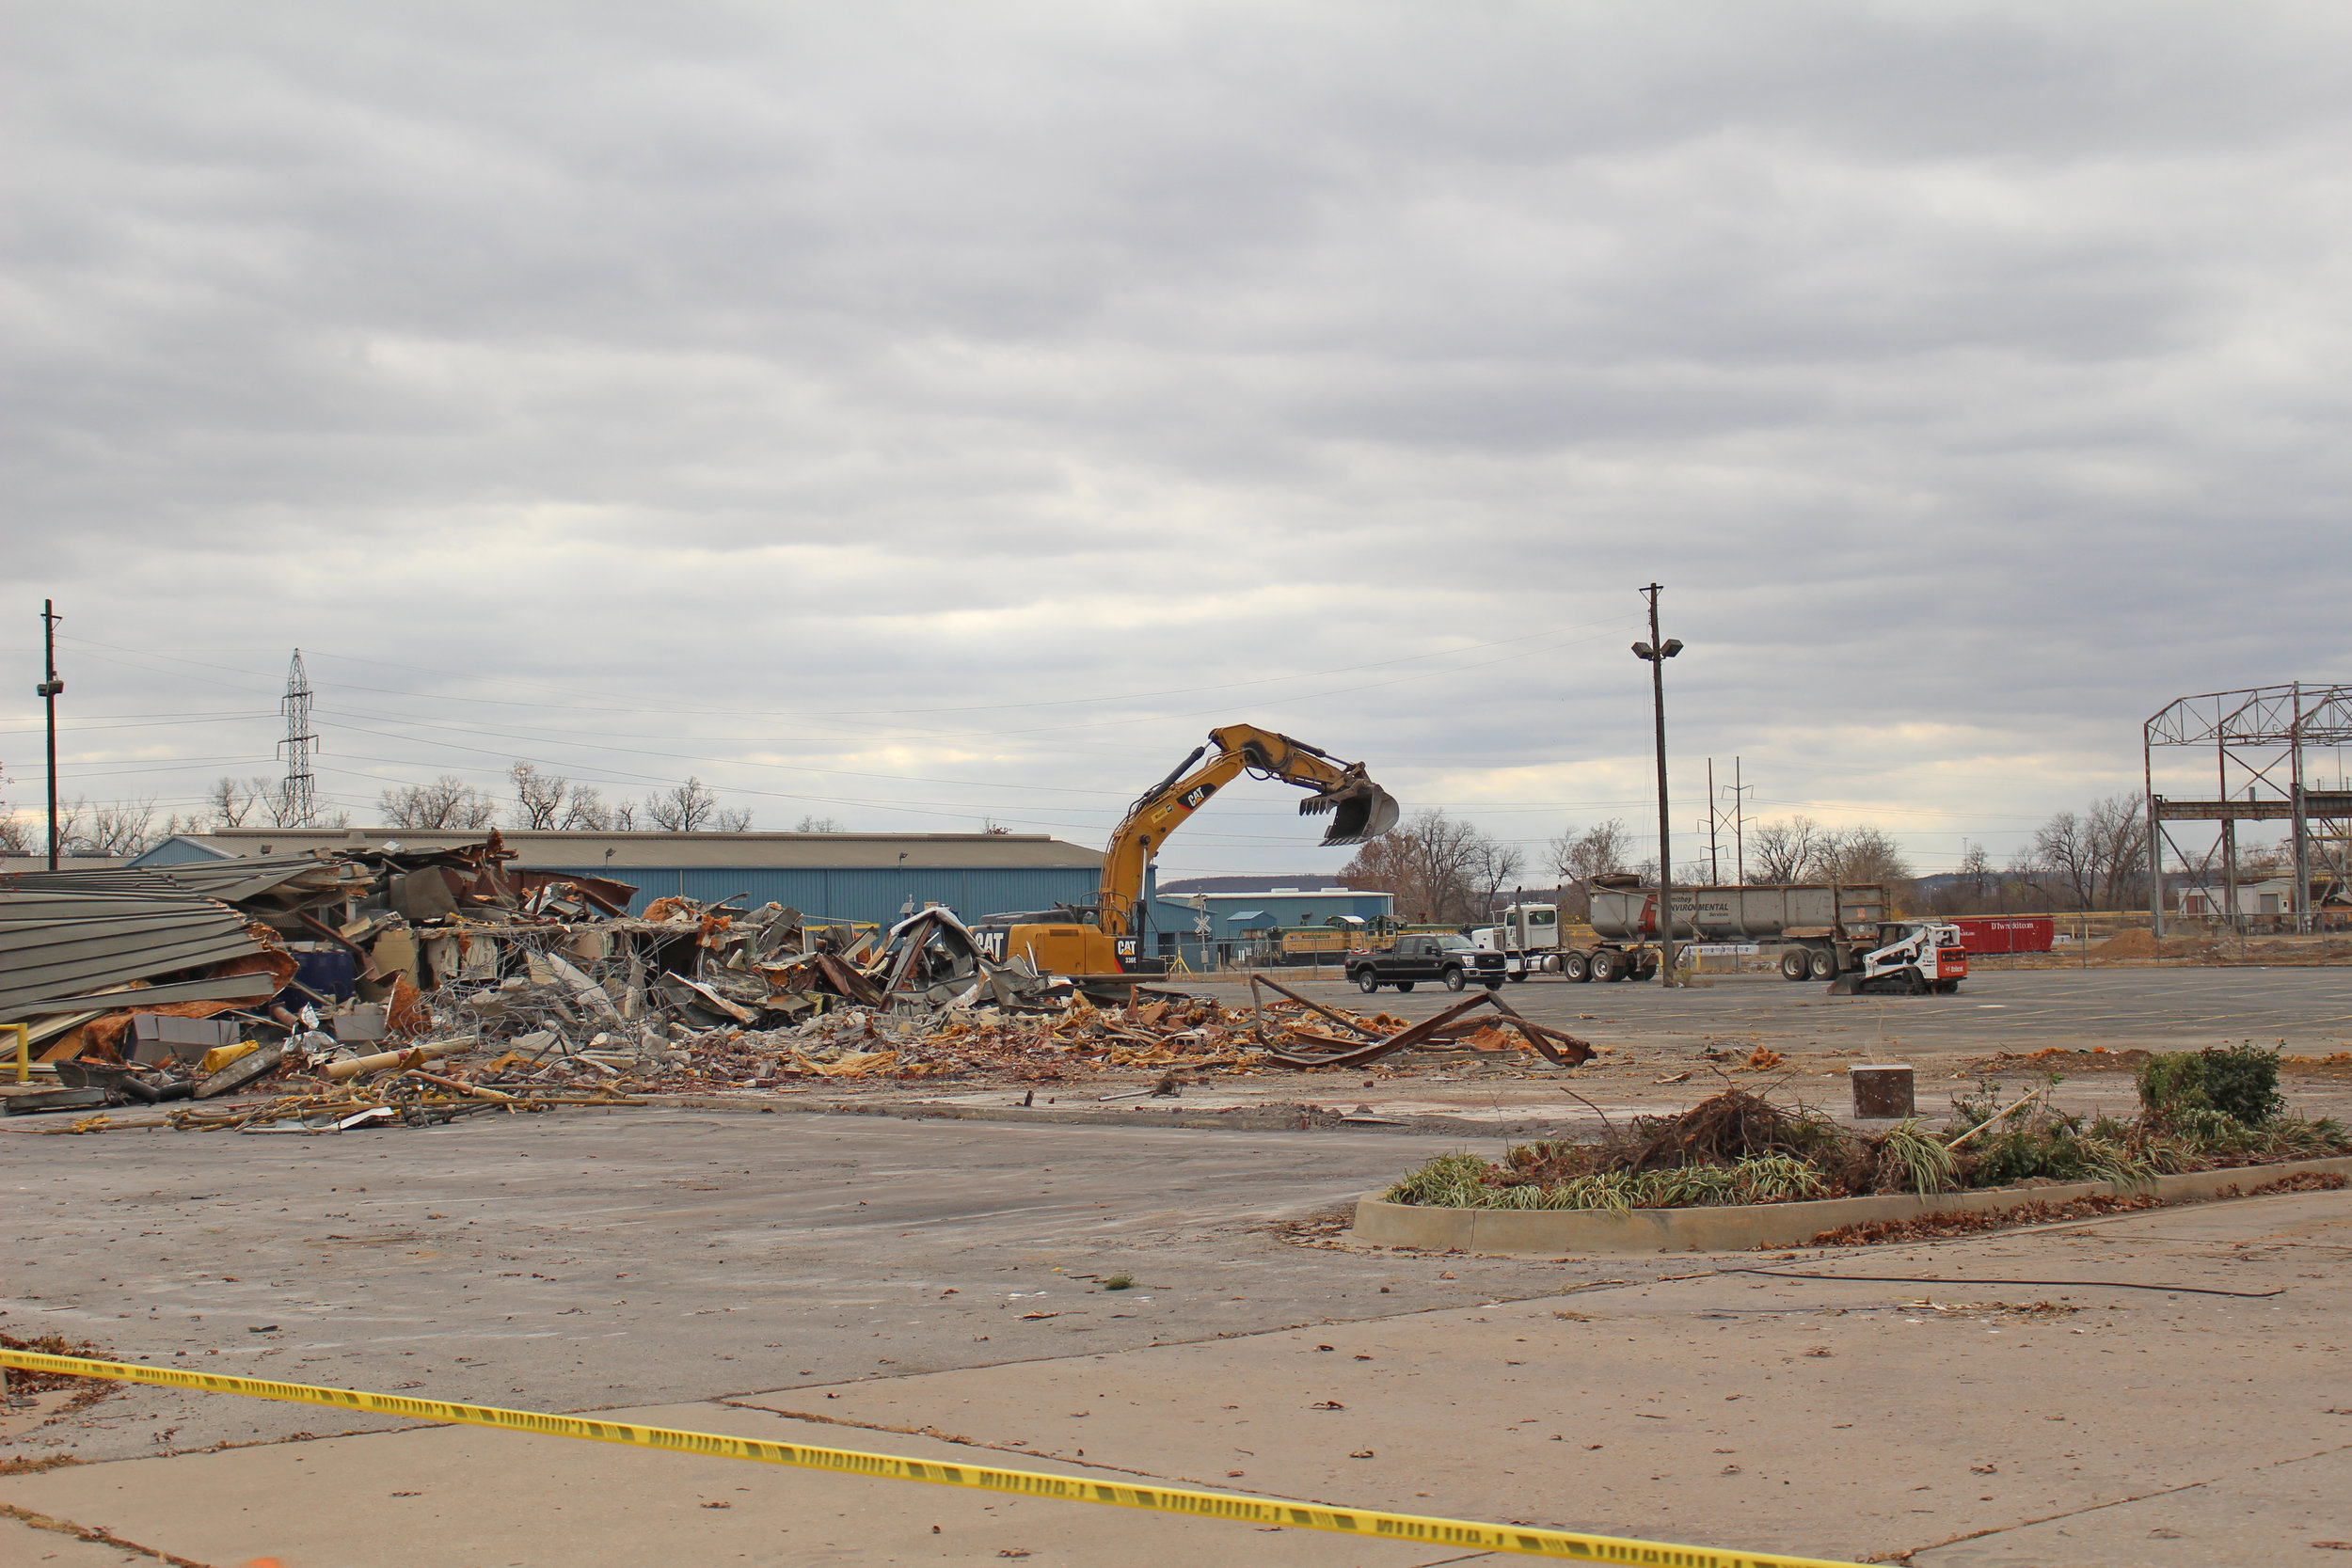 The former Gerdau steel mill is now prime commercial real estate being marketed by the City of Sand Springs.